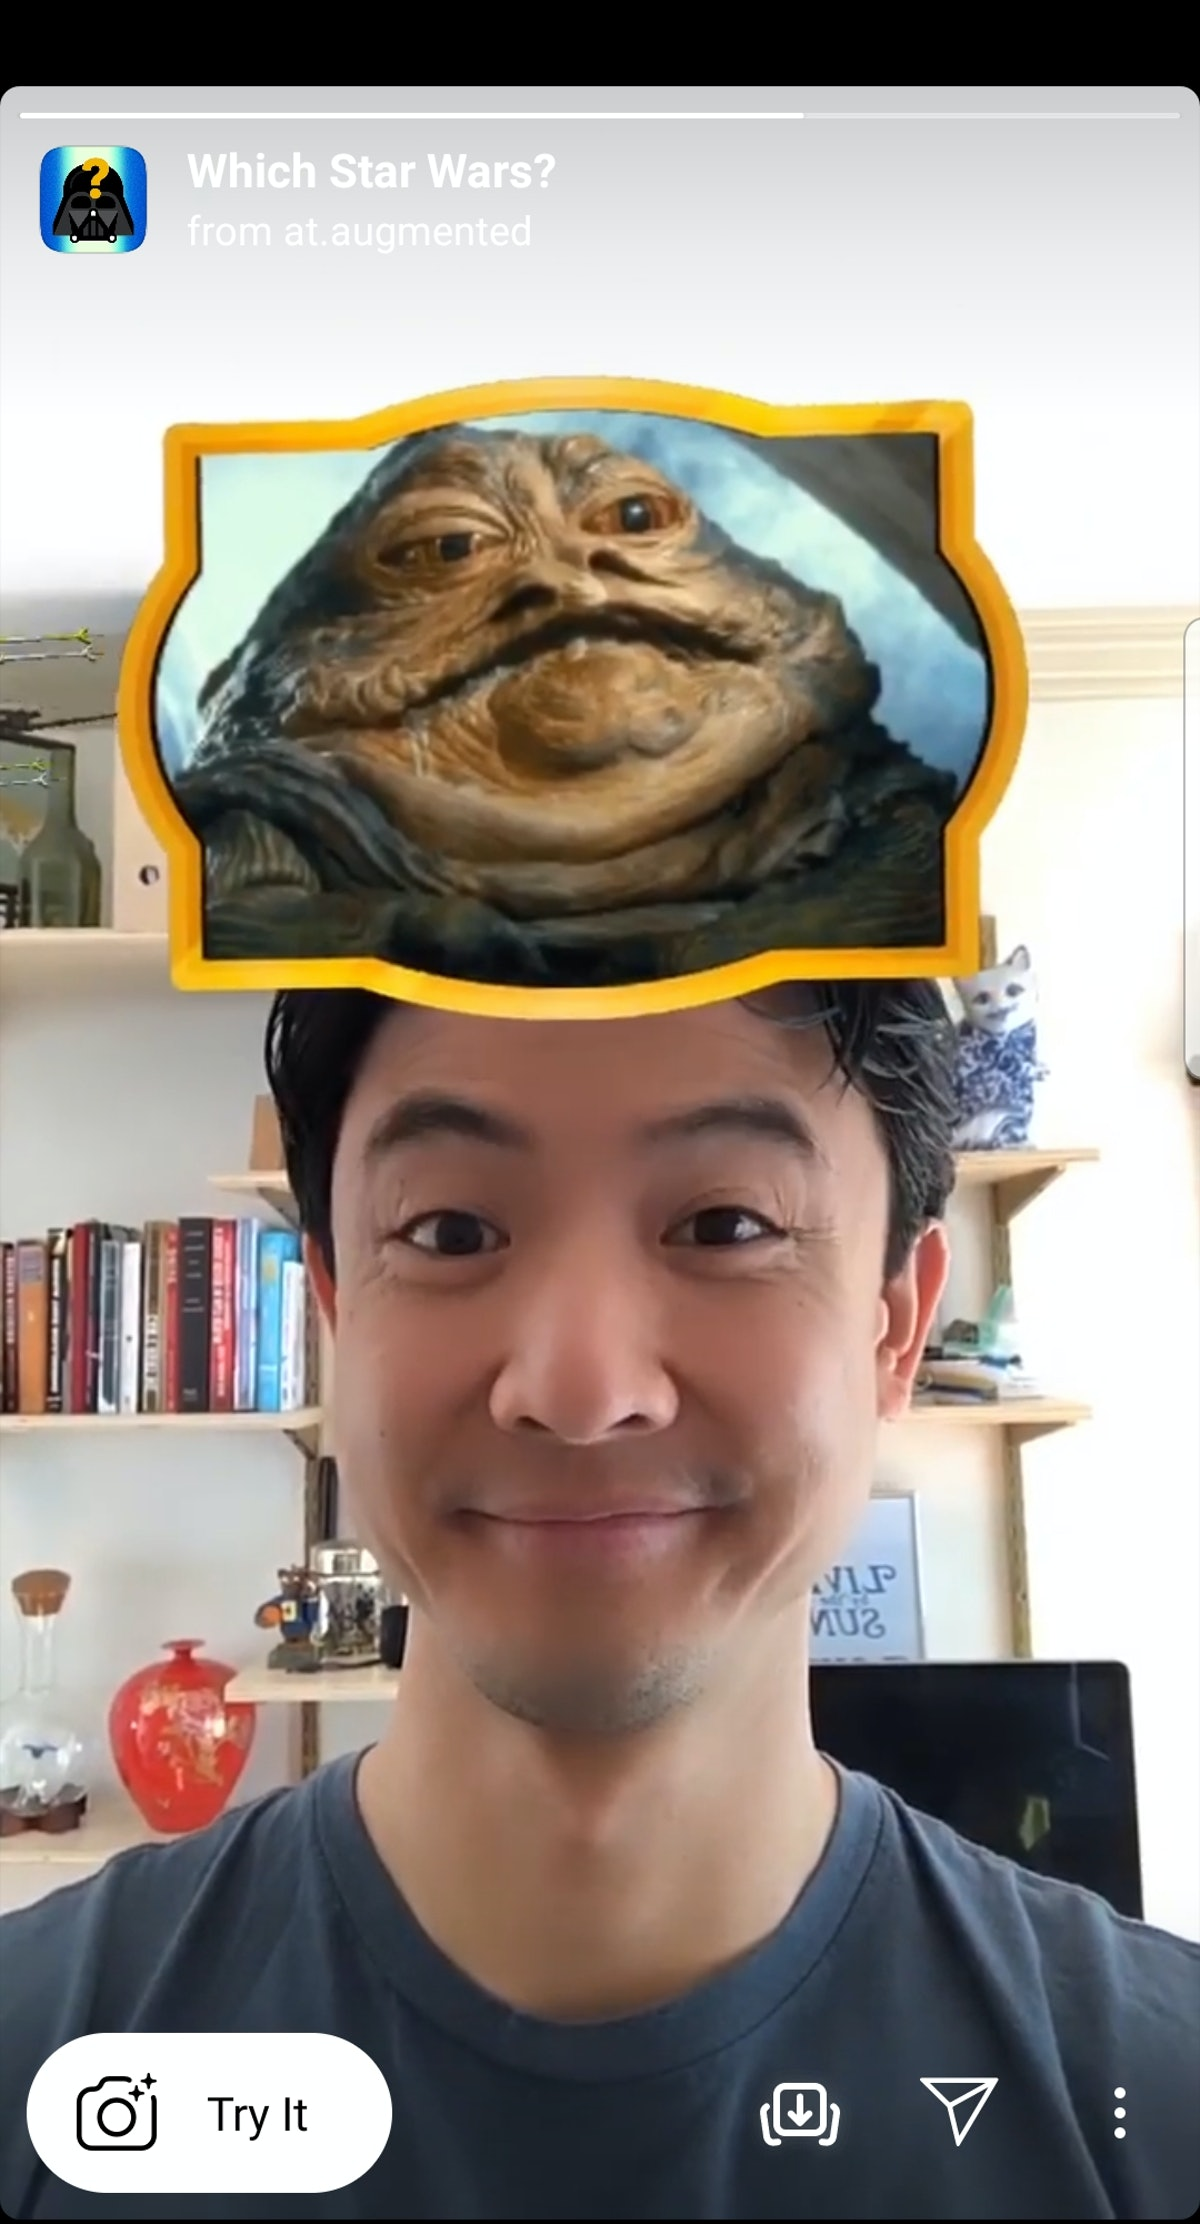 """Here's how to get the """"Star Wars"""" Instagram Story Filter from the creator."""